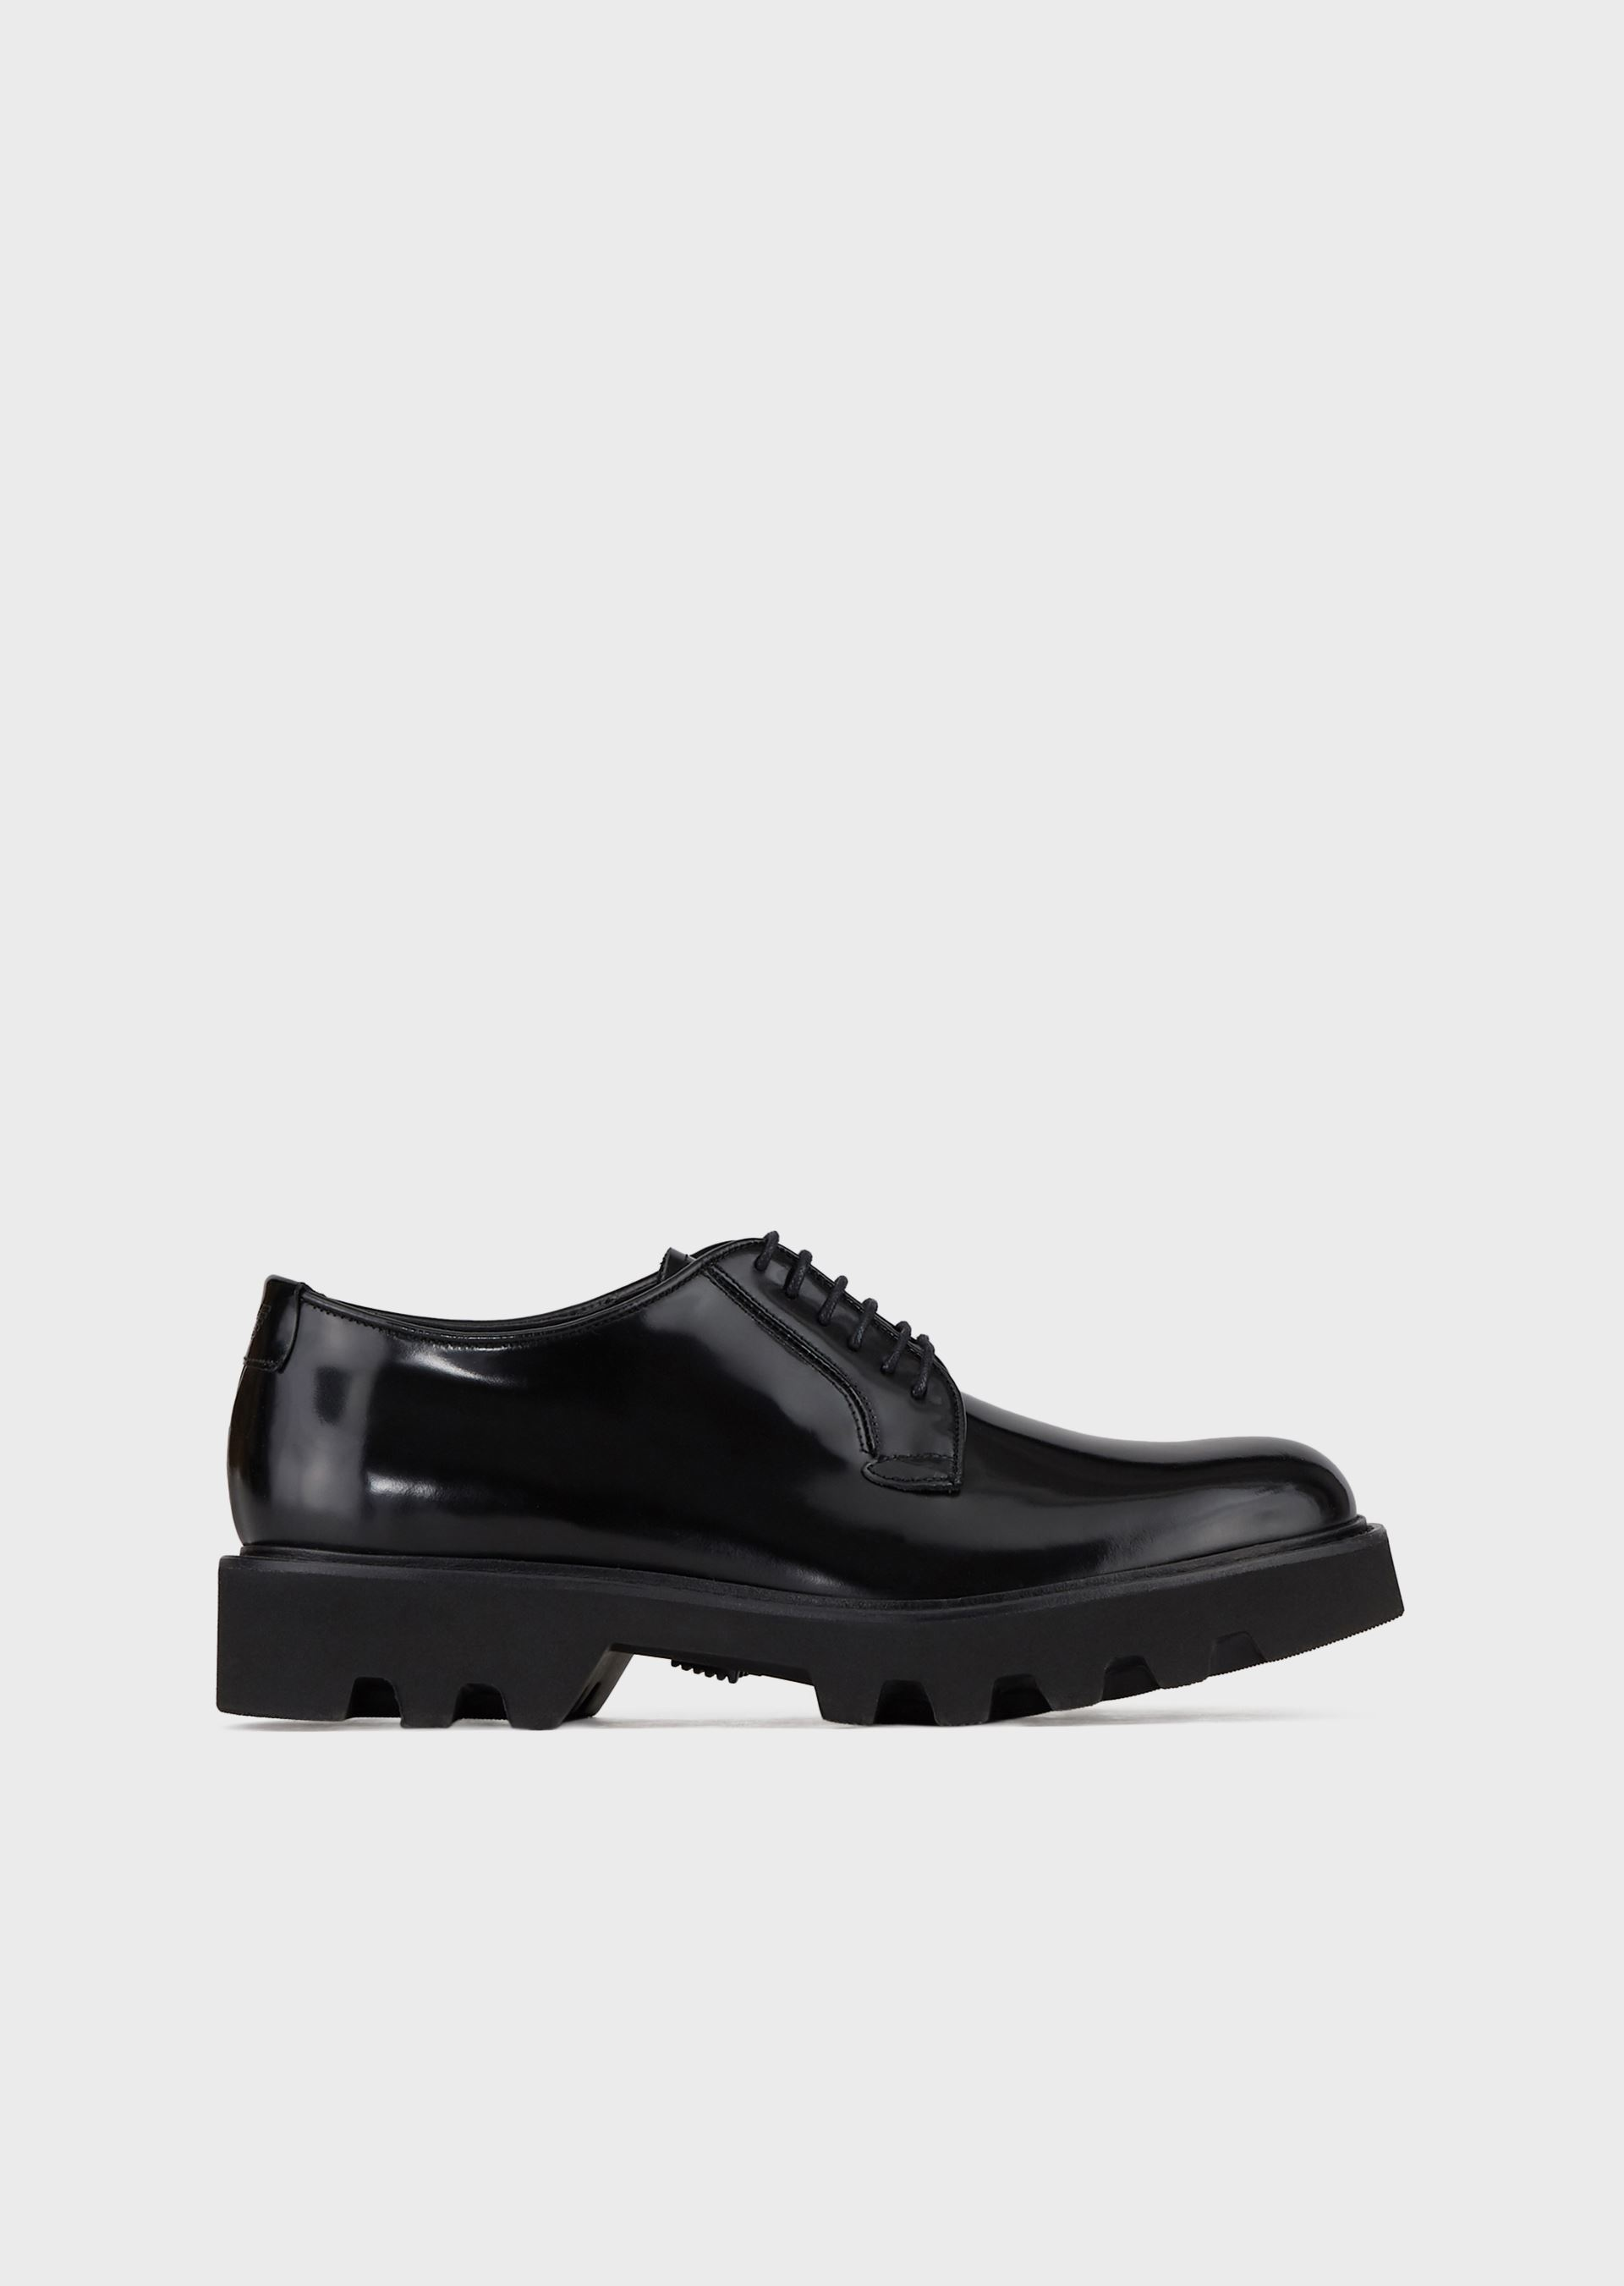 Calf-leather derby shoes Giorgio Armani 9JtrO3